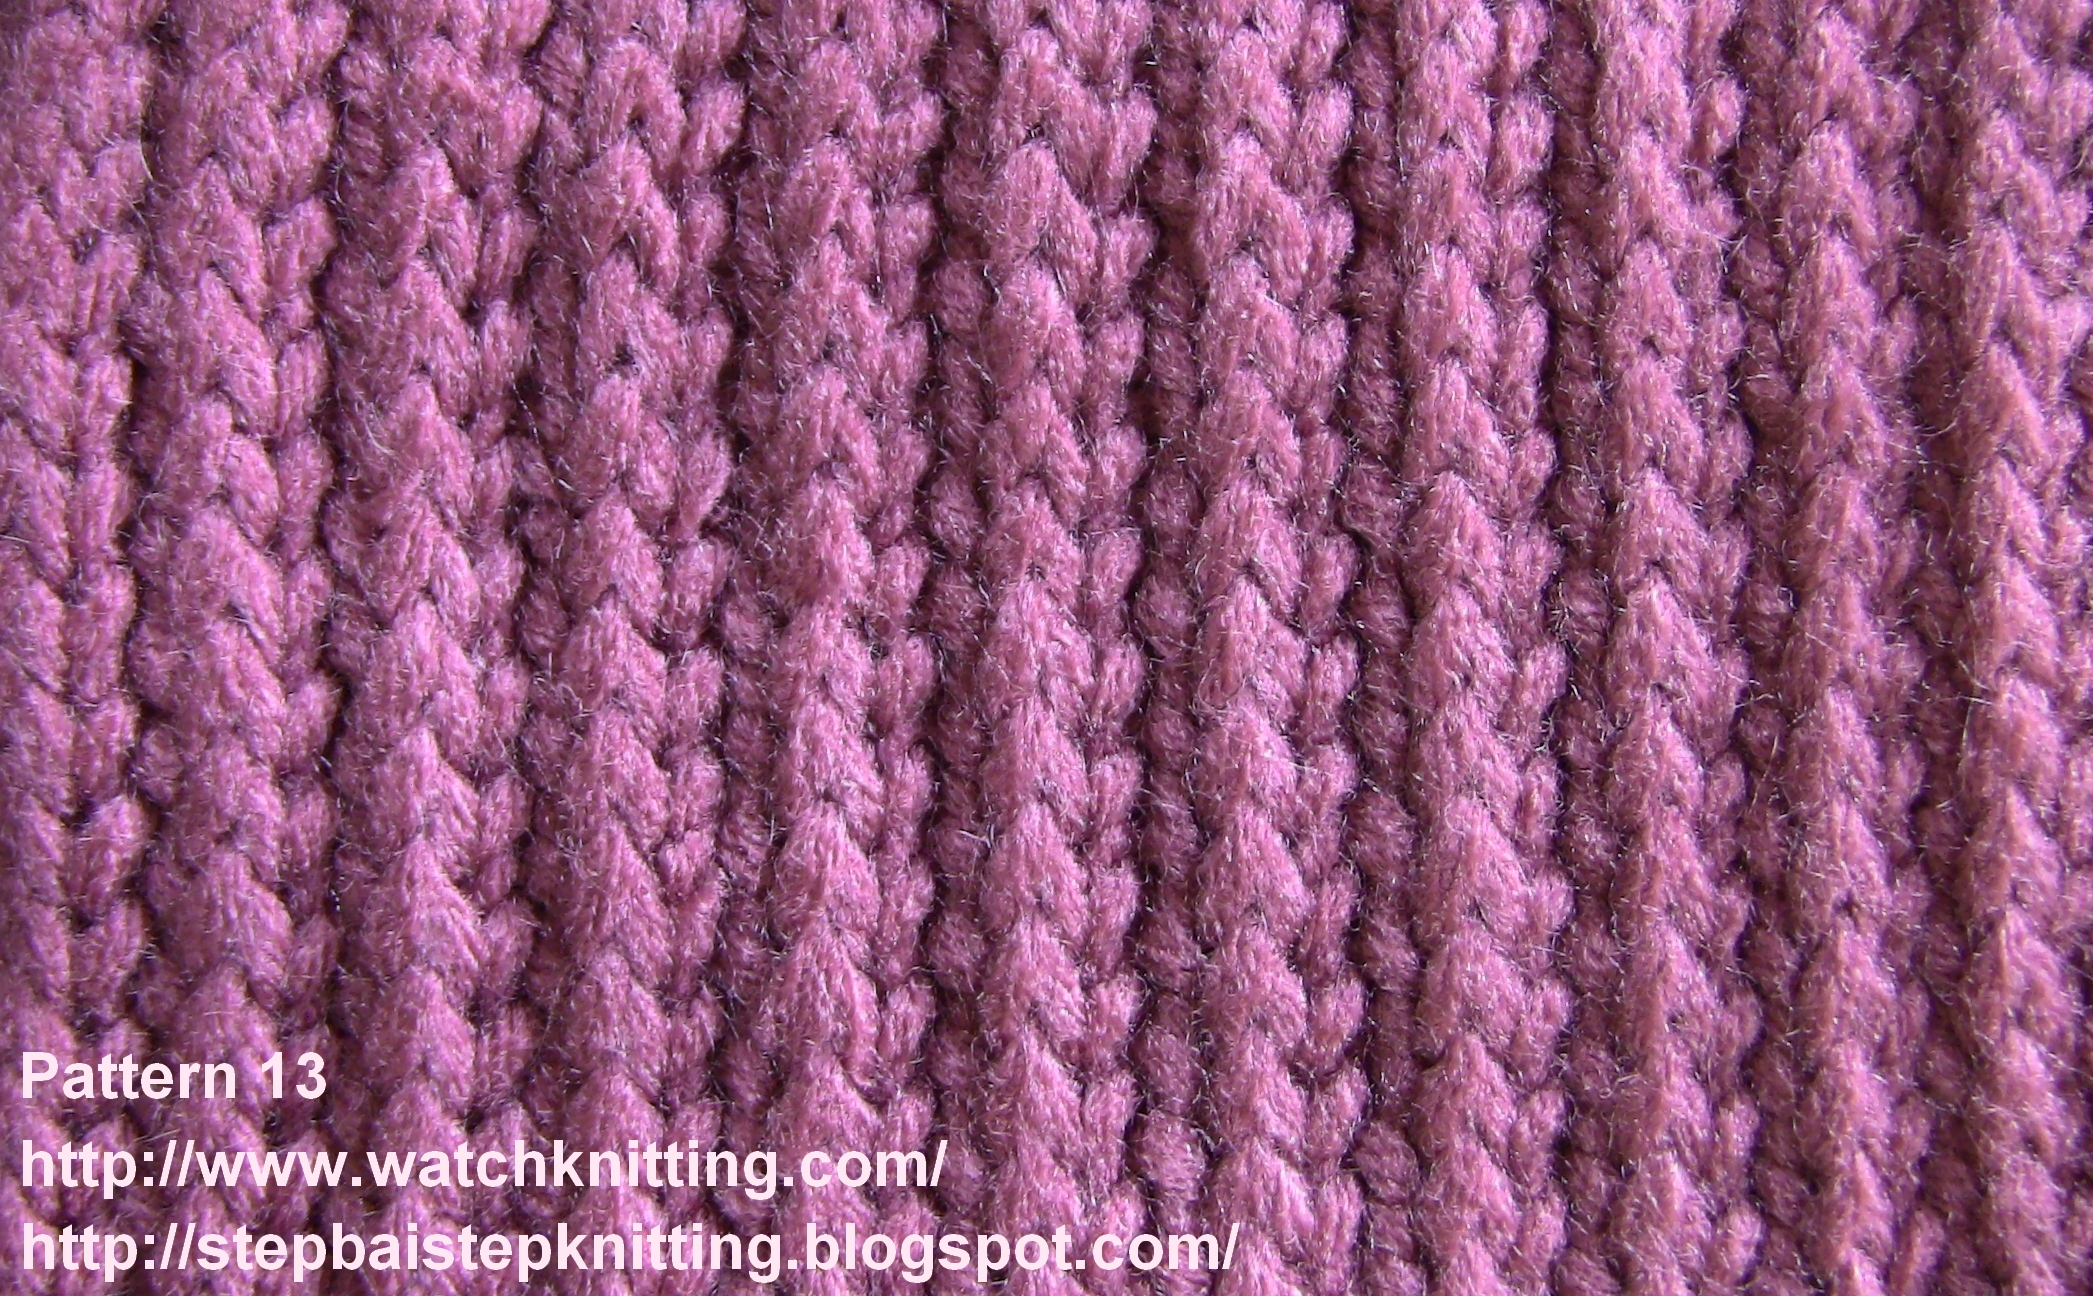 Easy Knitting Patterns : easy knitting pattern - Knitting for charity?